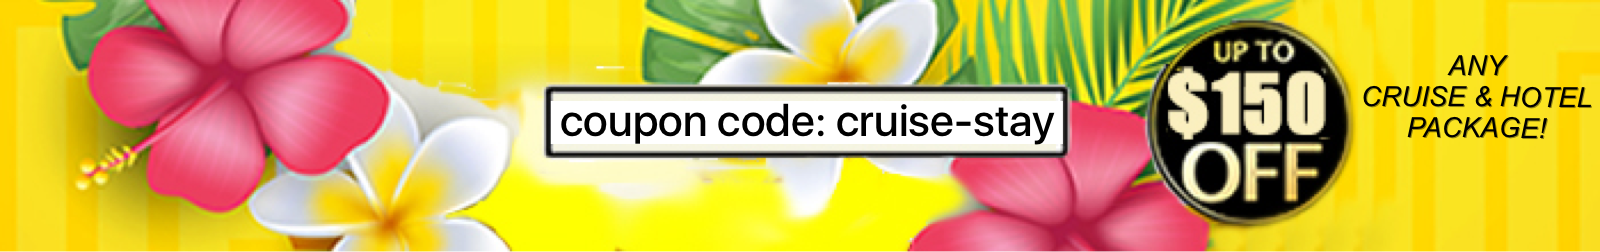 cruise-stay-discount.png